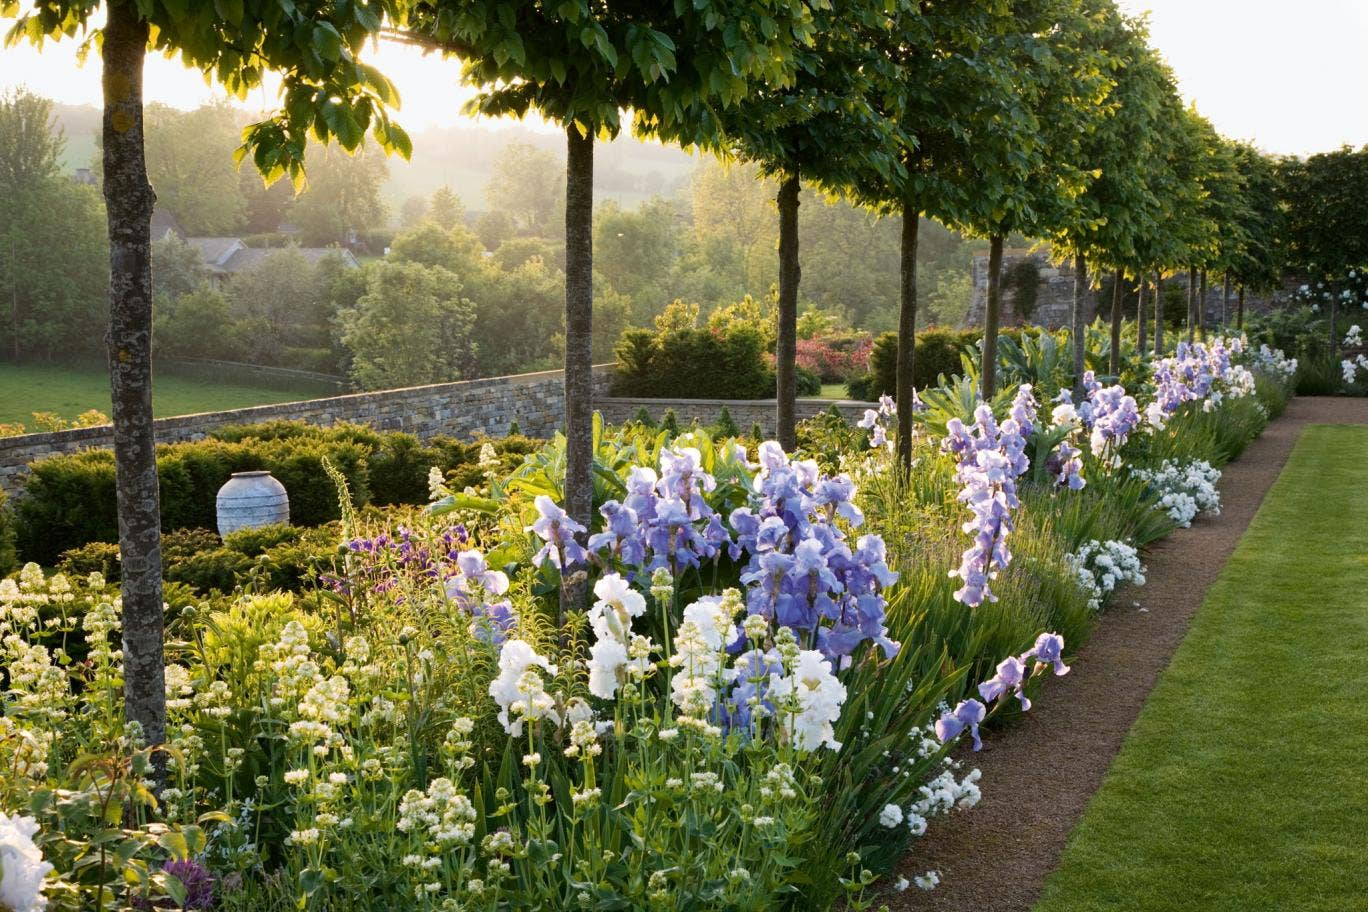 One of the lush pictures in 'The New English Garden'